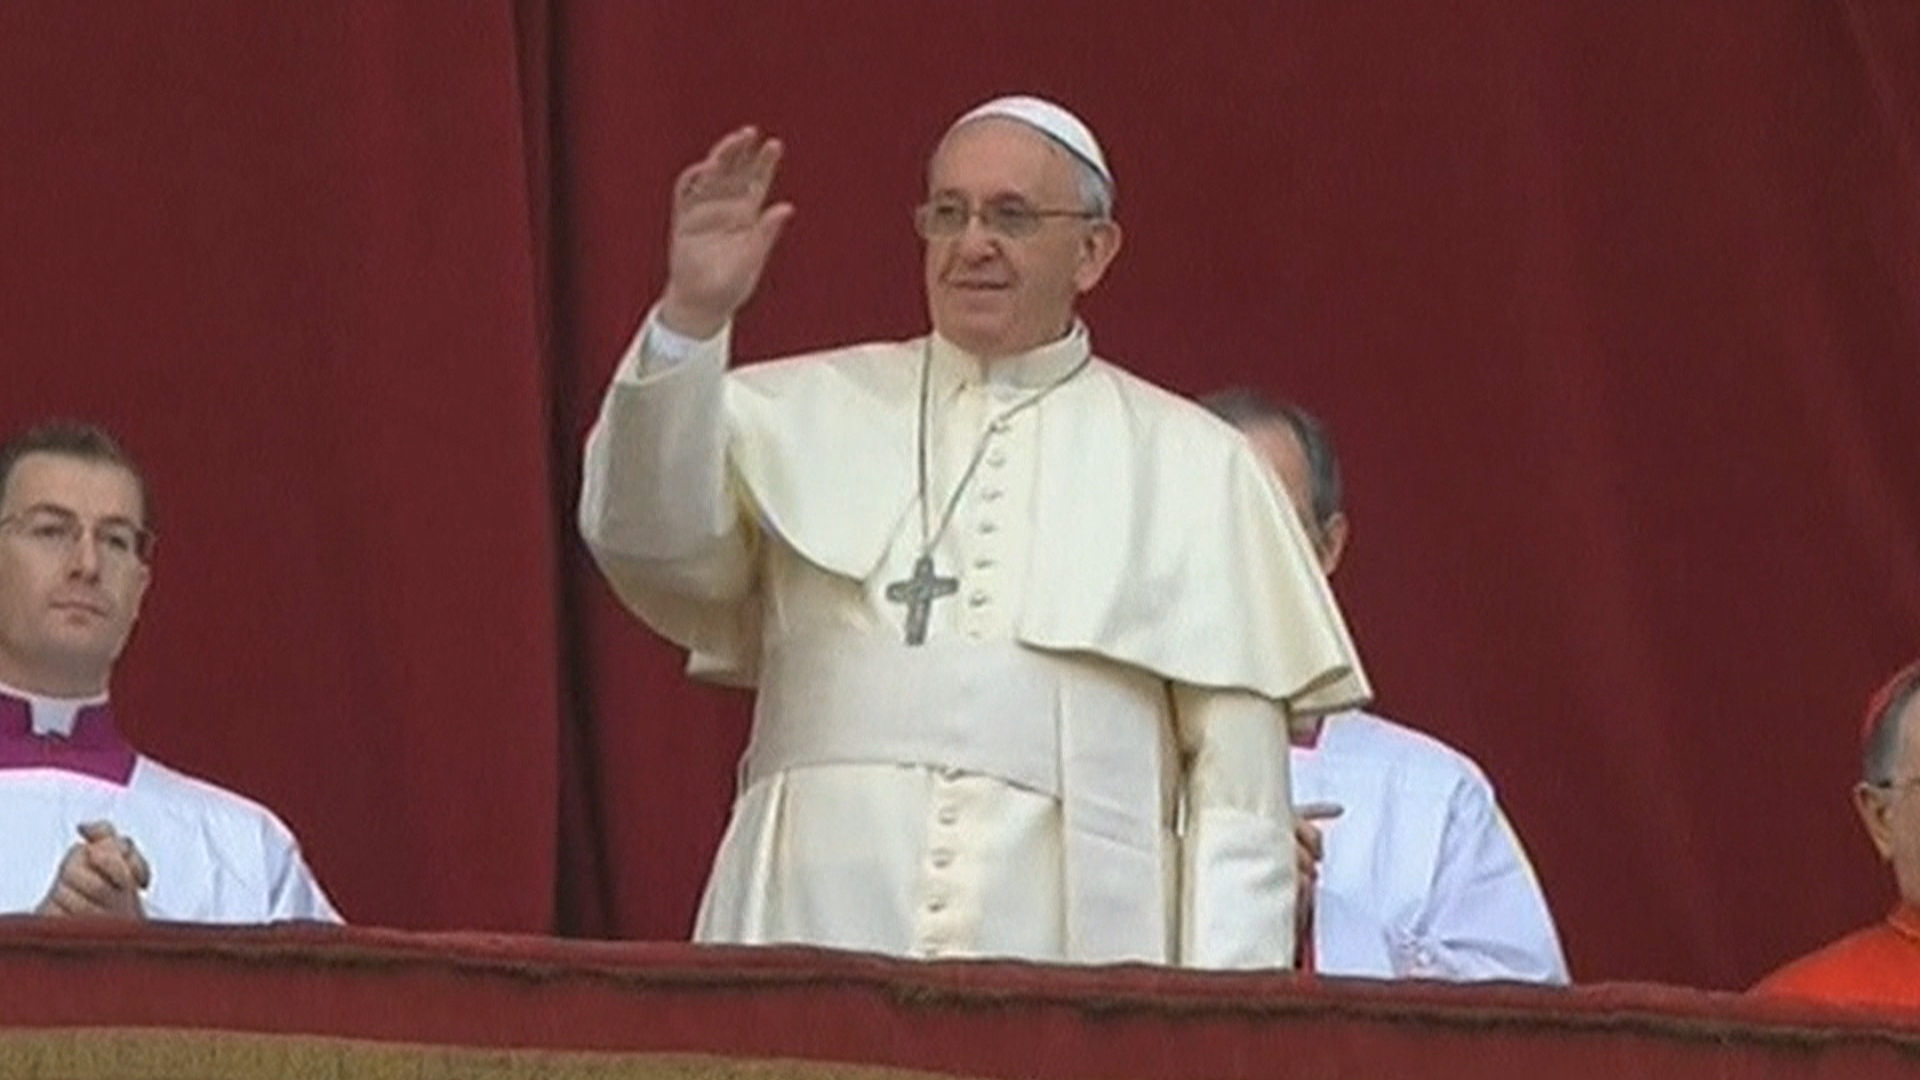 Pope Francis Begs Forgiveness for 'Evil' Sex Abuse by Priests